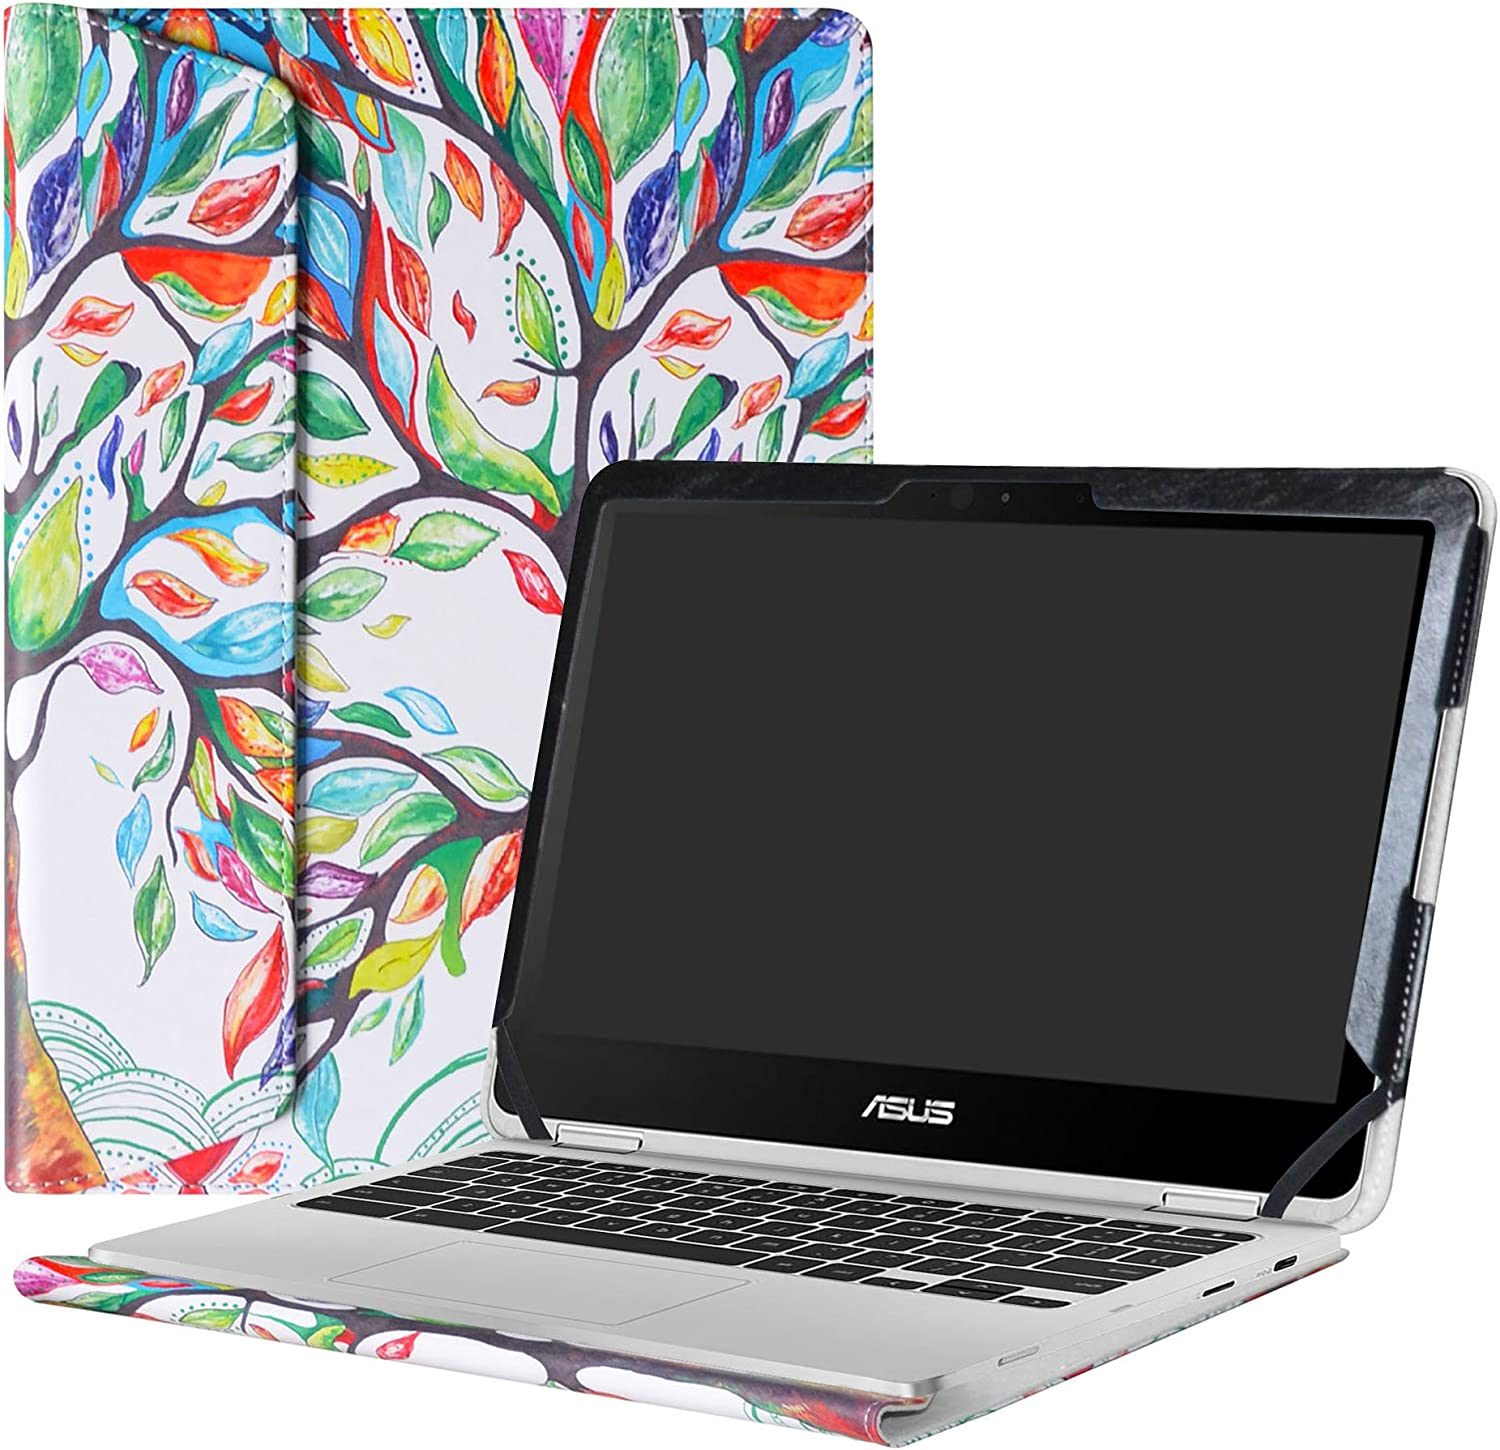 "Alapmk Protective Case Cover for 12.5"" Asus Chromebook Flip C302CA Laptop(Not fit ASUS Chromebook Flip C213SA/C100PA/C101PA/C300SA/C202SA/C201PA),Love Tree"